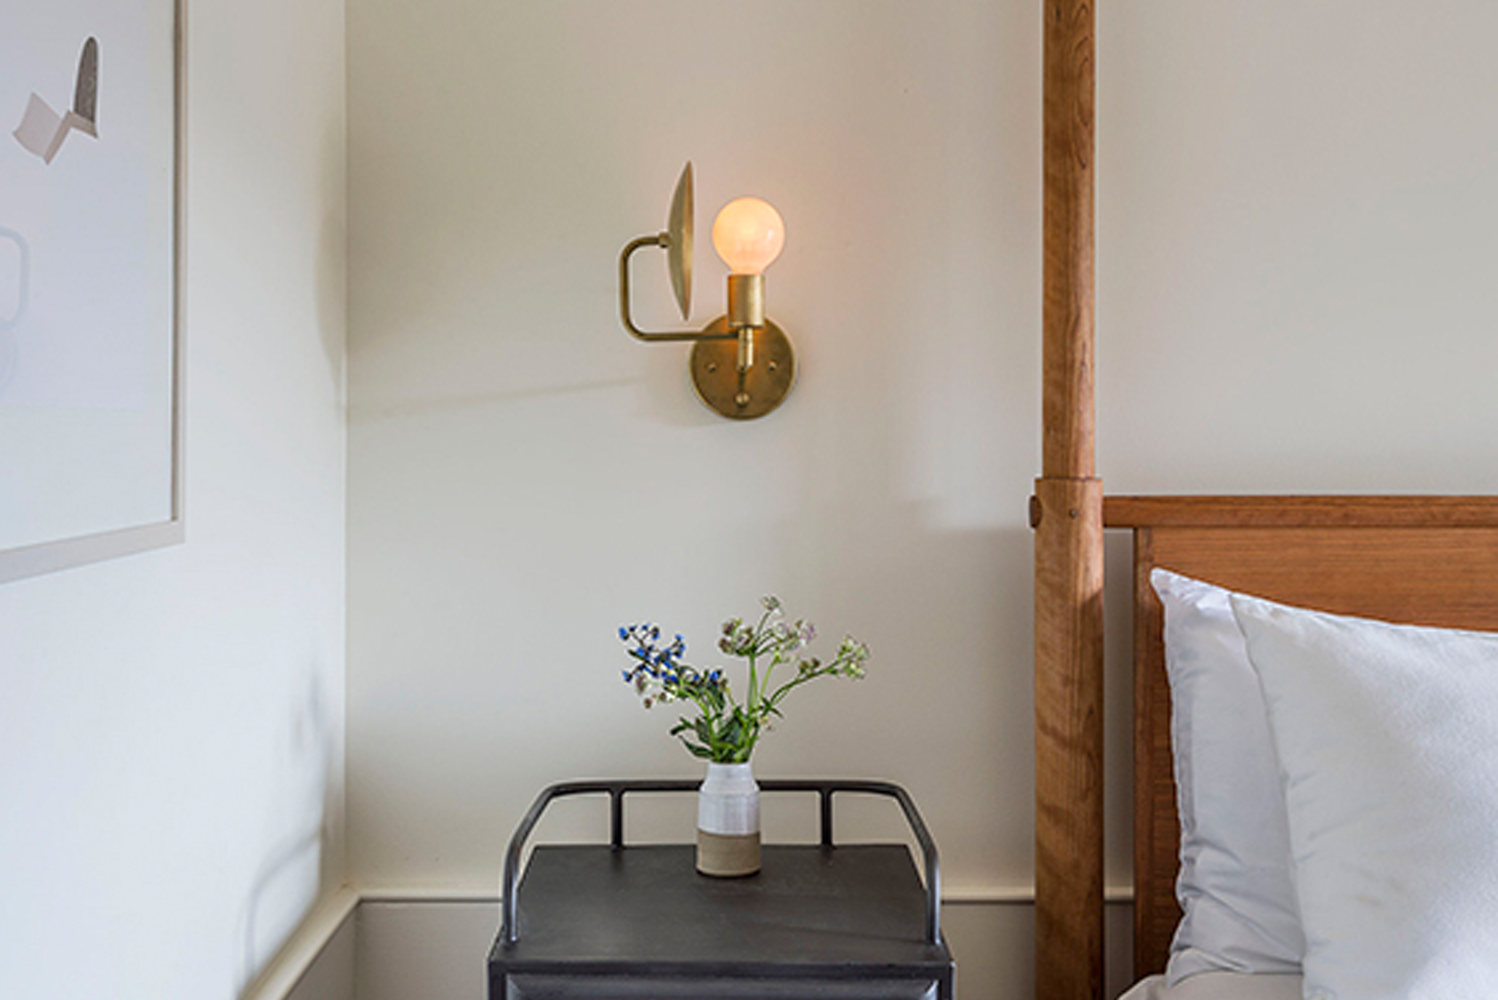 The sconce is a modern interpretation of an early American candle form.